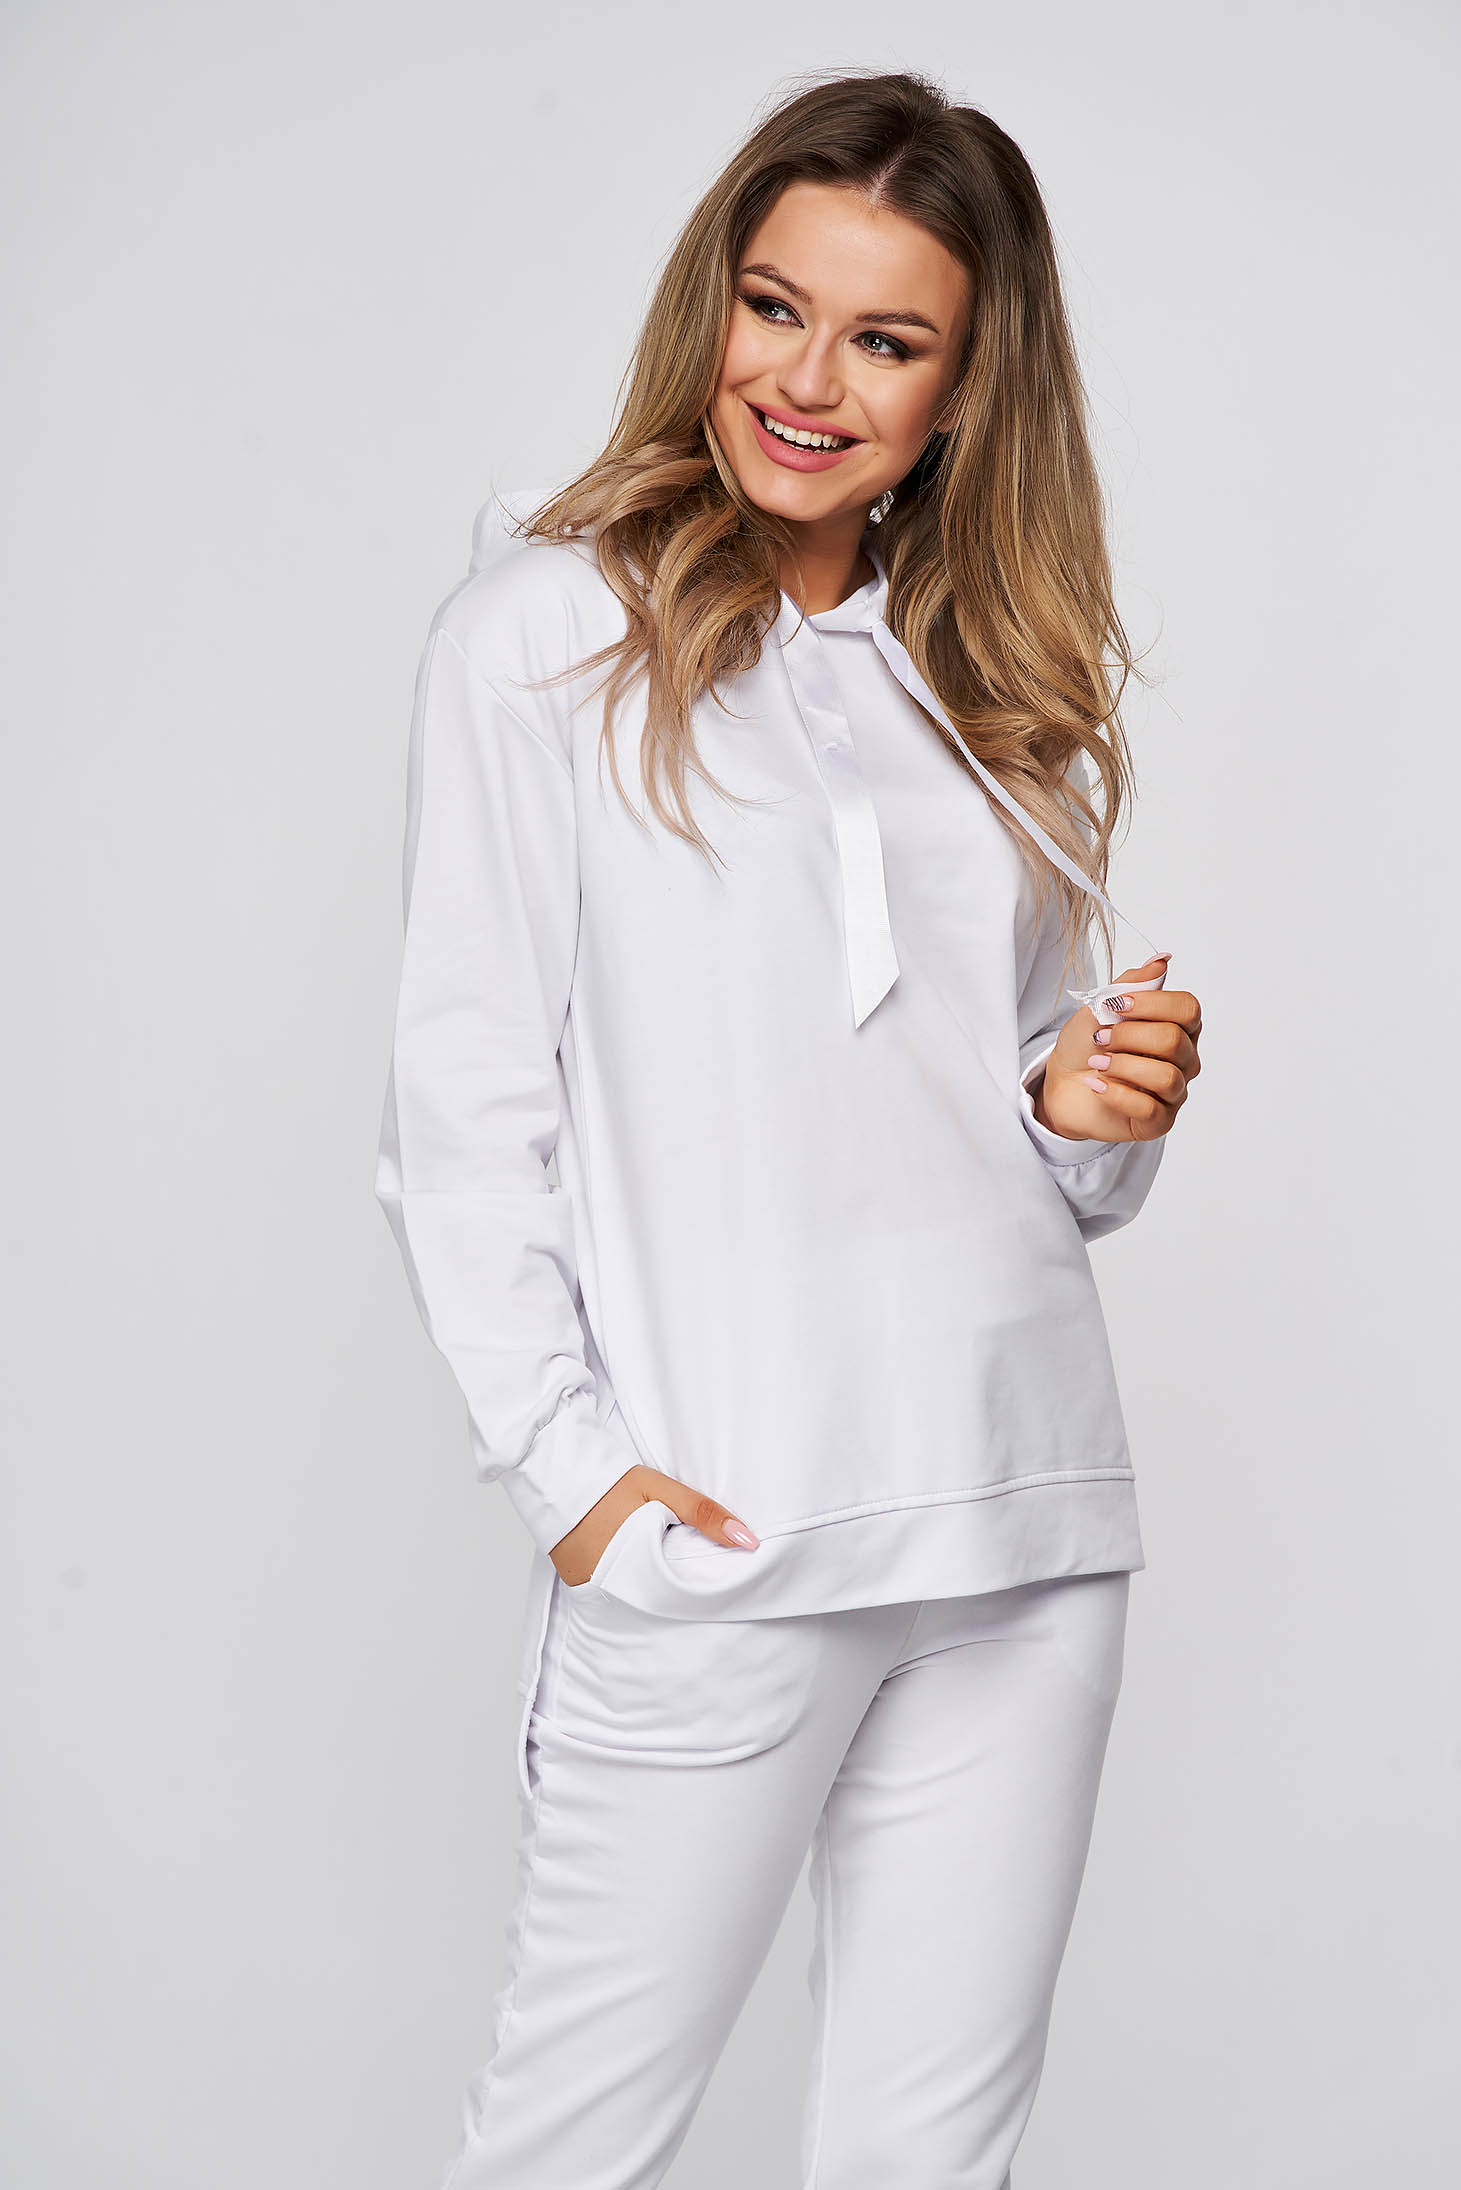 With trousers from two pieces cotton white sport 2 pieces with easy cut